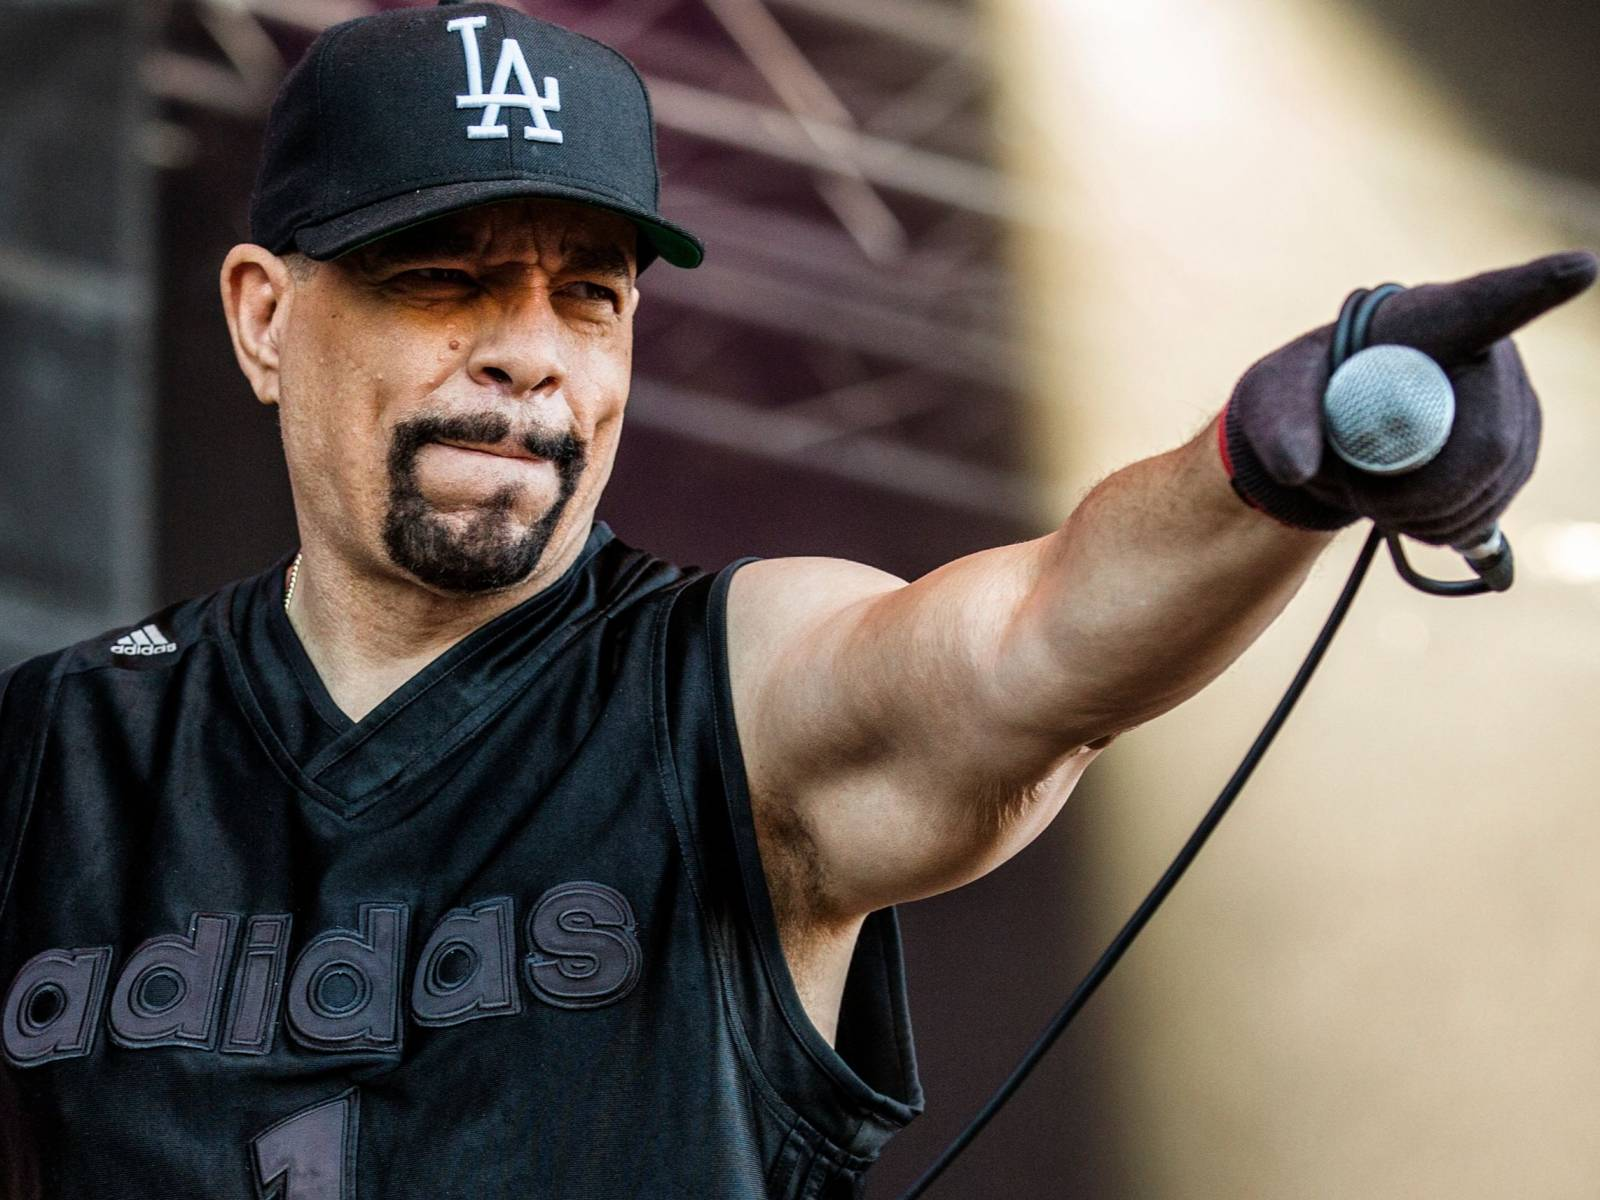 Ice-T Applauds Firing Of 'Law & Order' Spinf Writer Over 'Light Up' Looters Comment